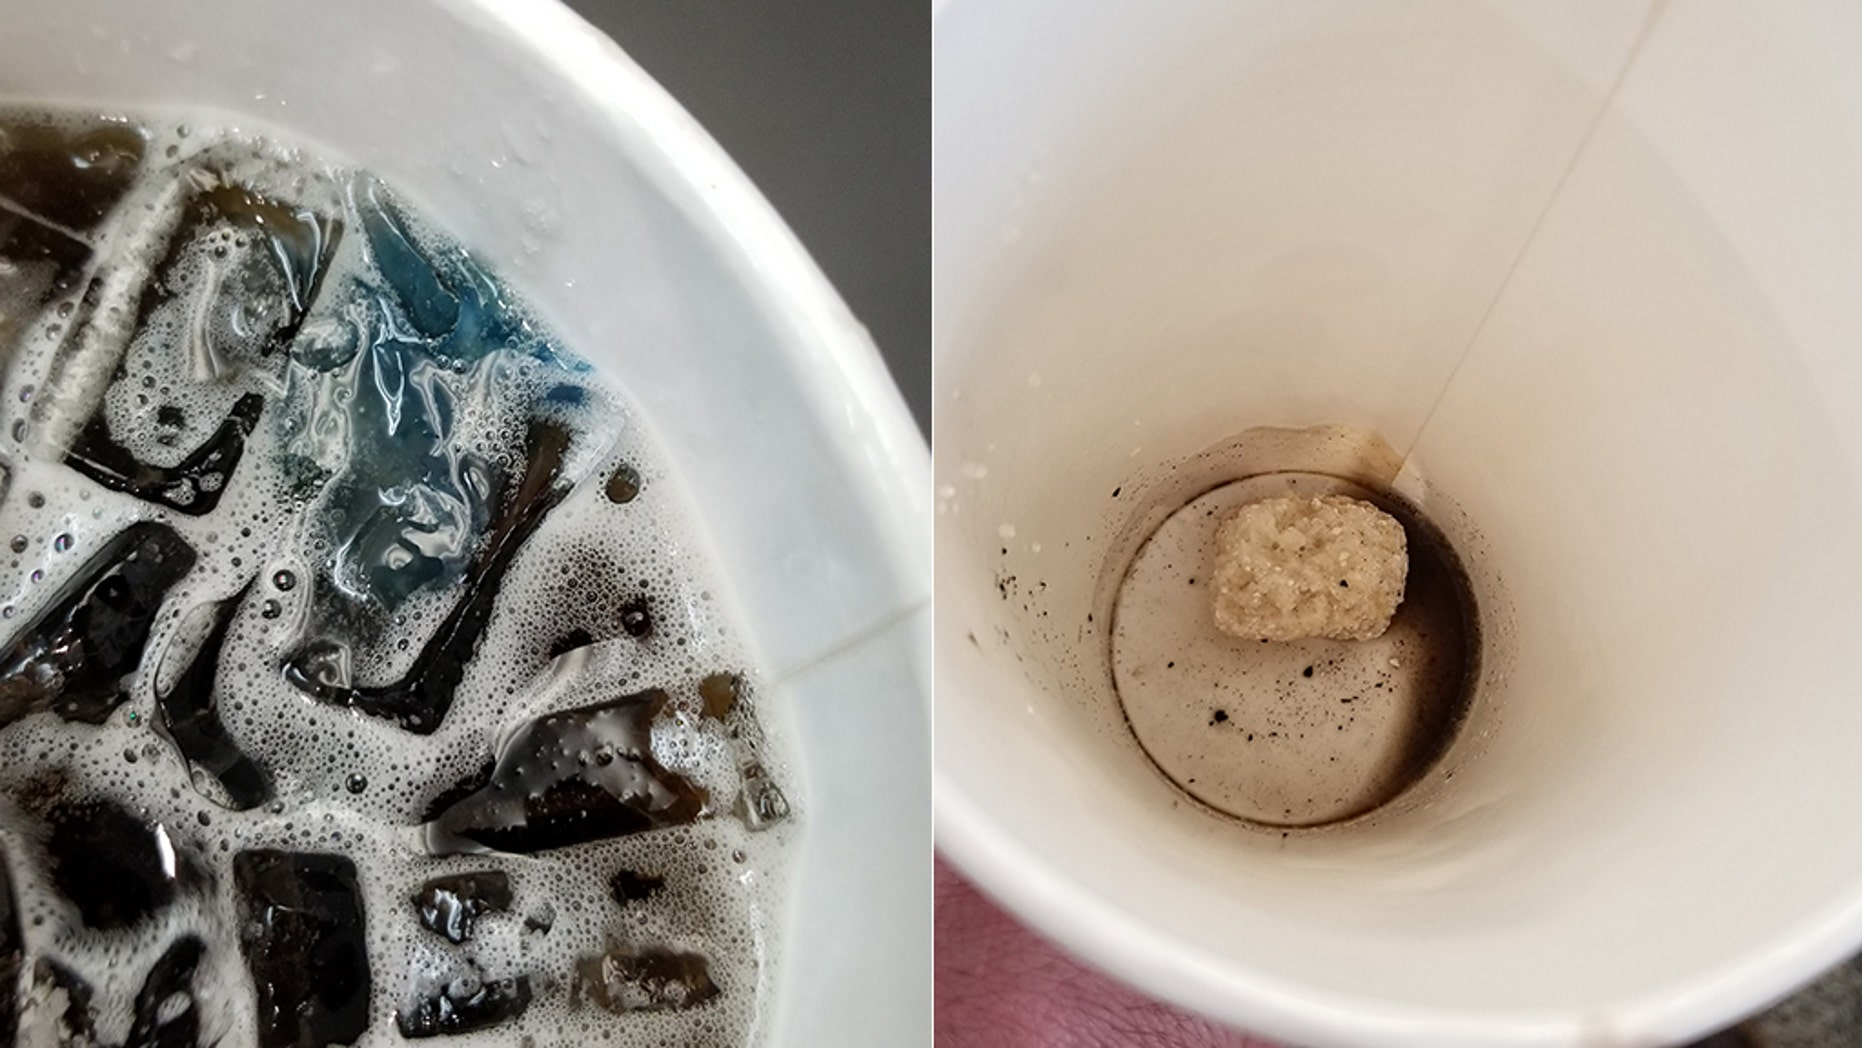 A man in Florida claims a McDonald's worker put a bleach pod in his soda, leading to his hospitalization.